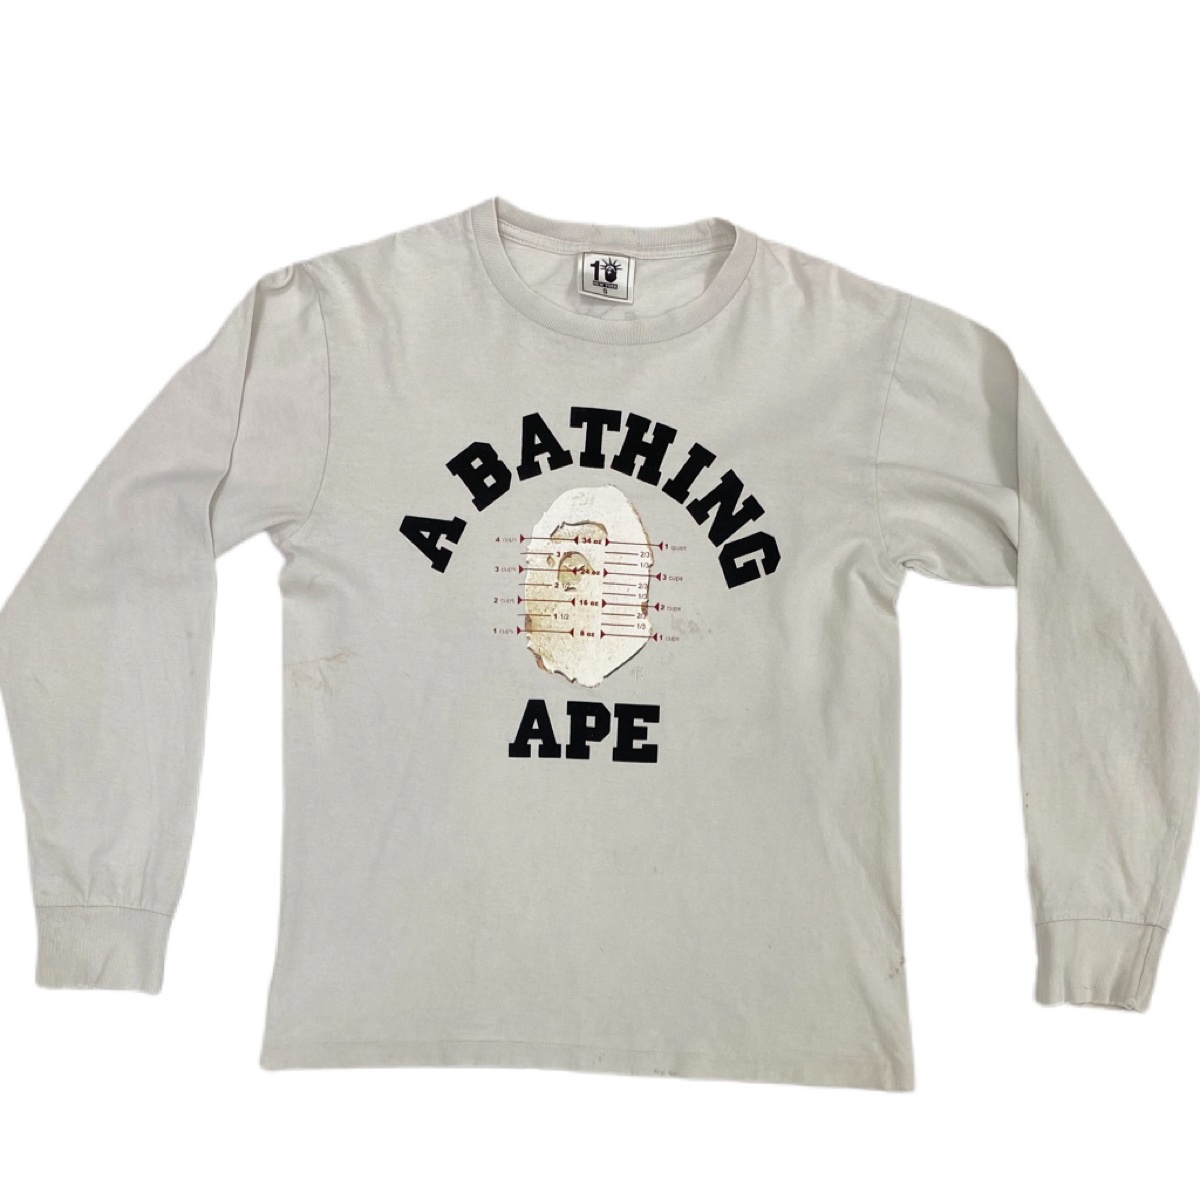 Bape white pusha T tee